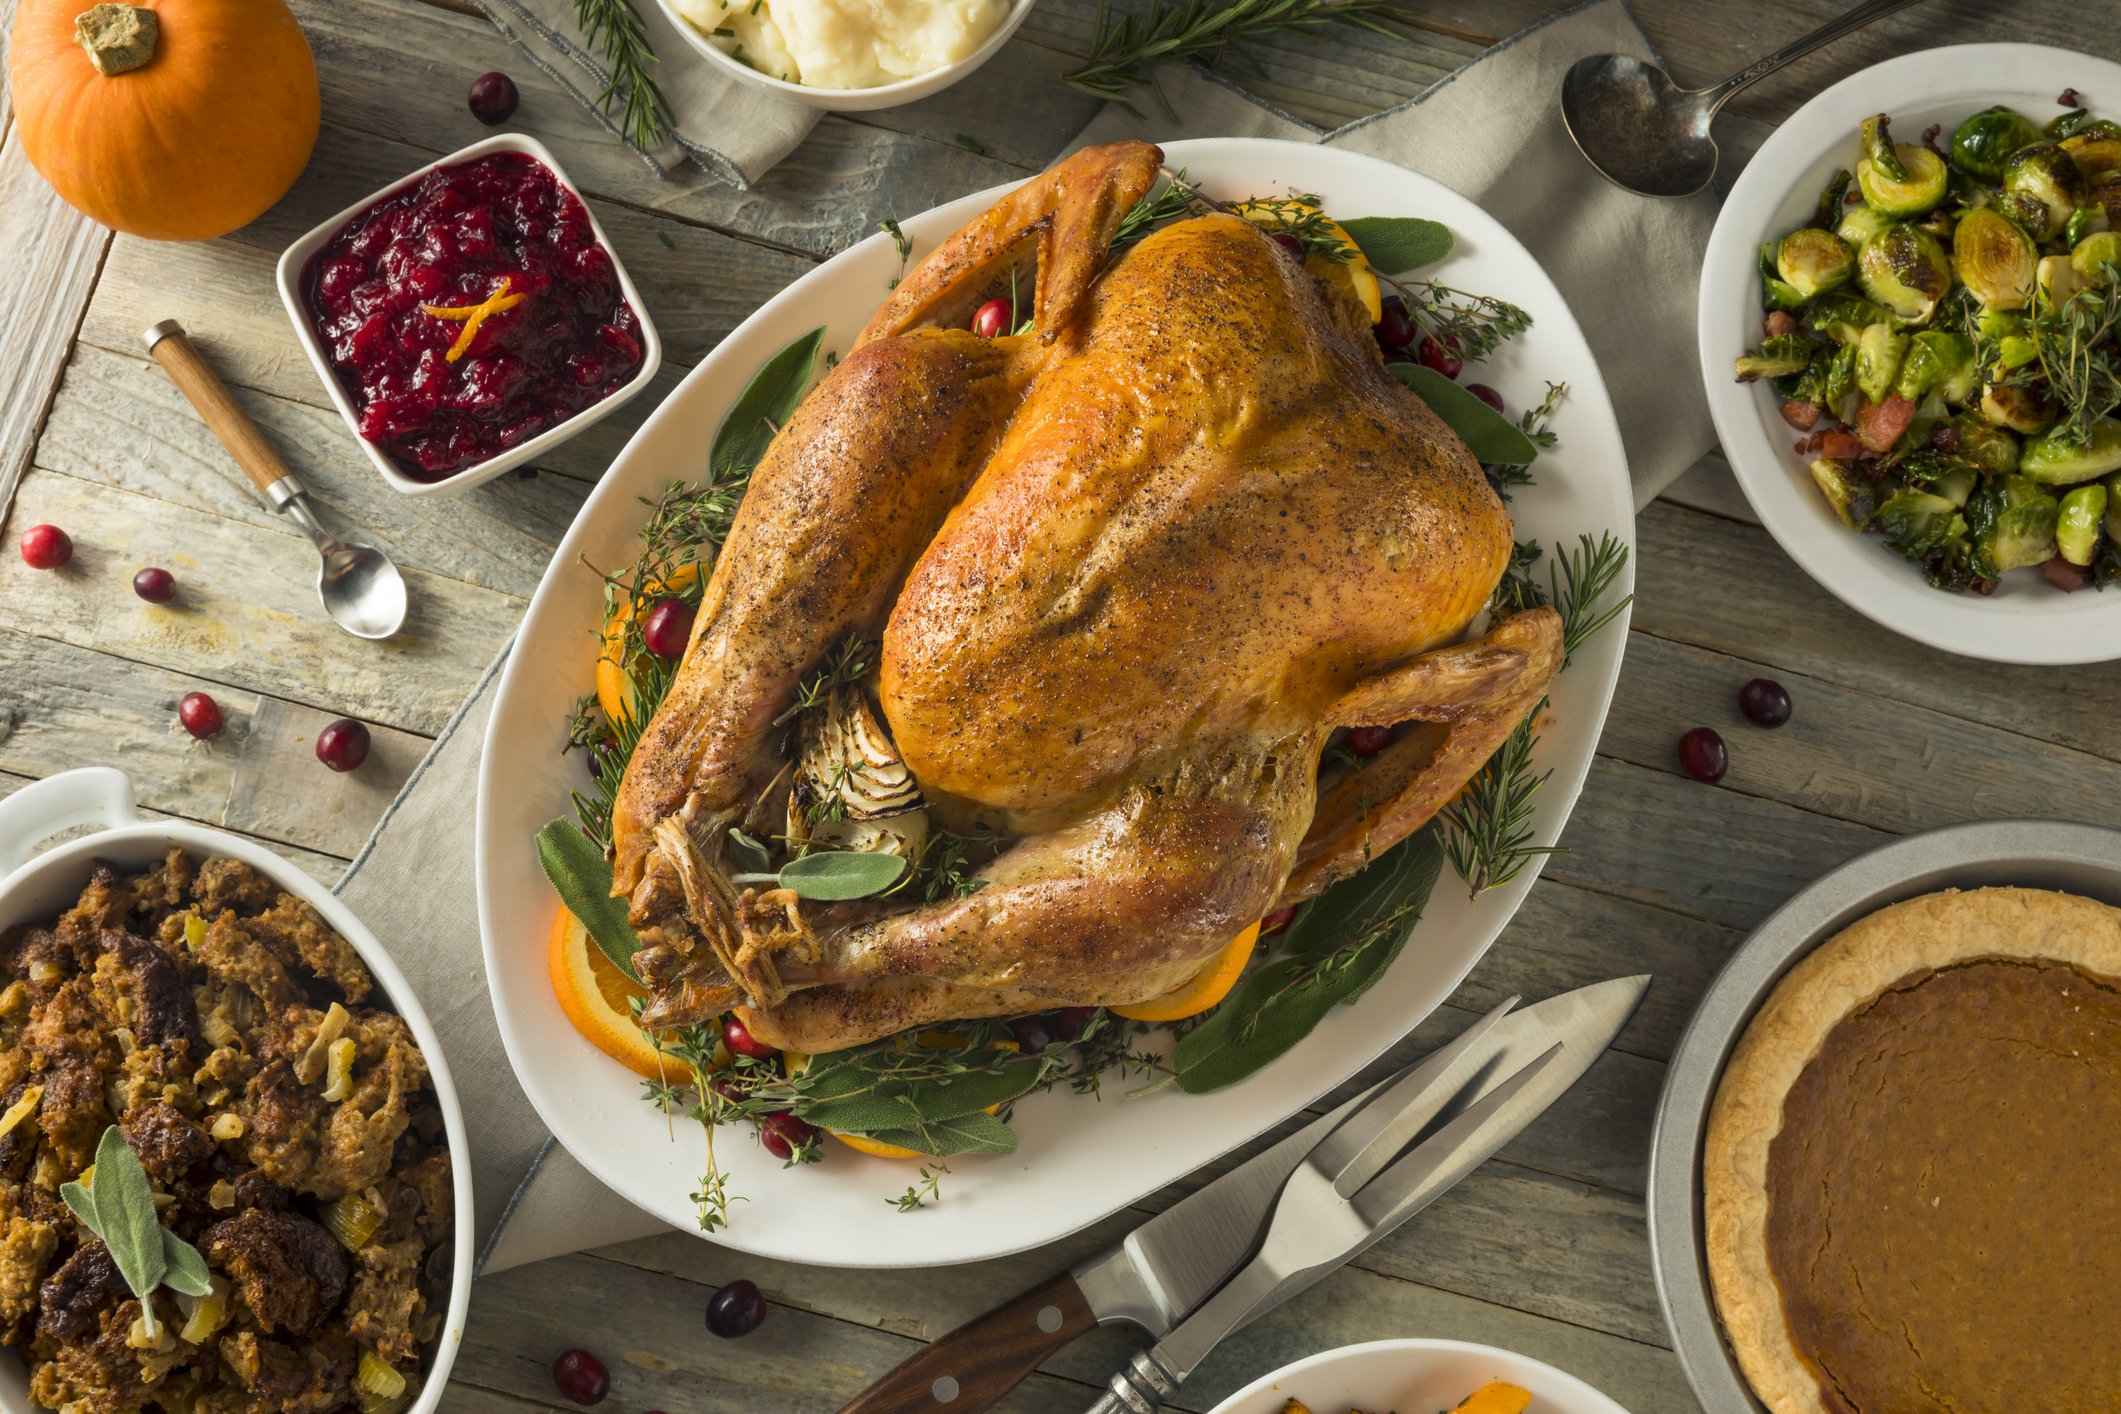 A beautiful, cooked turkey sits in the center of the table amidst of Thanksgiving dishes like stuffing and cranberry sauce.